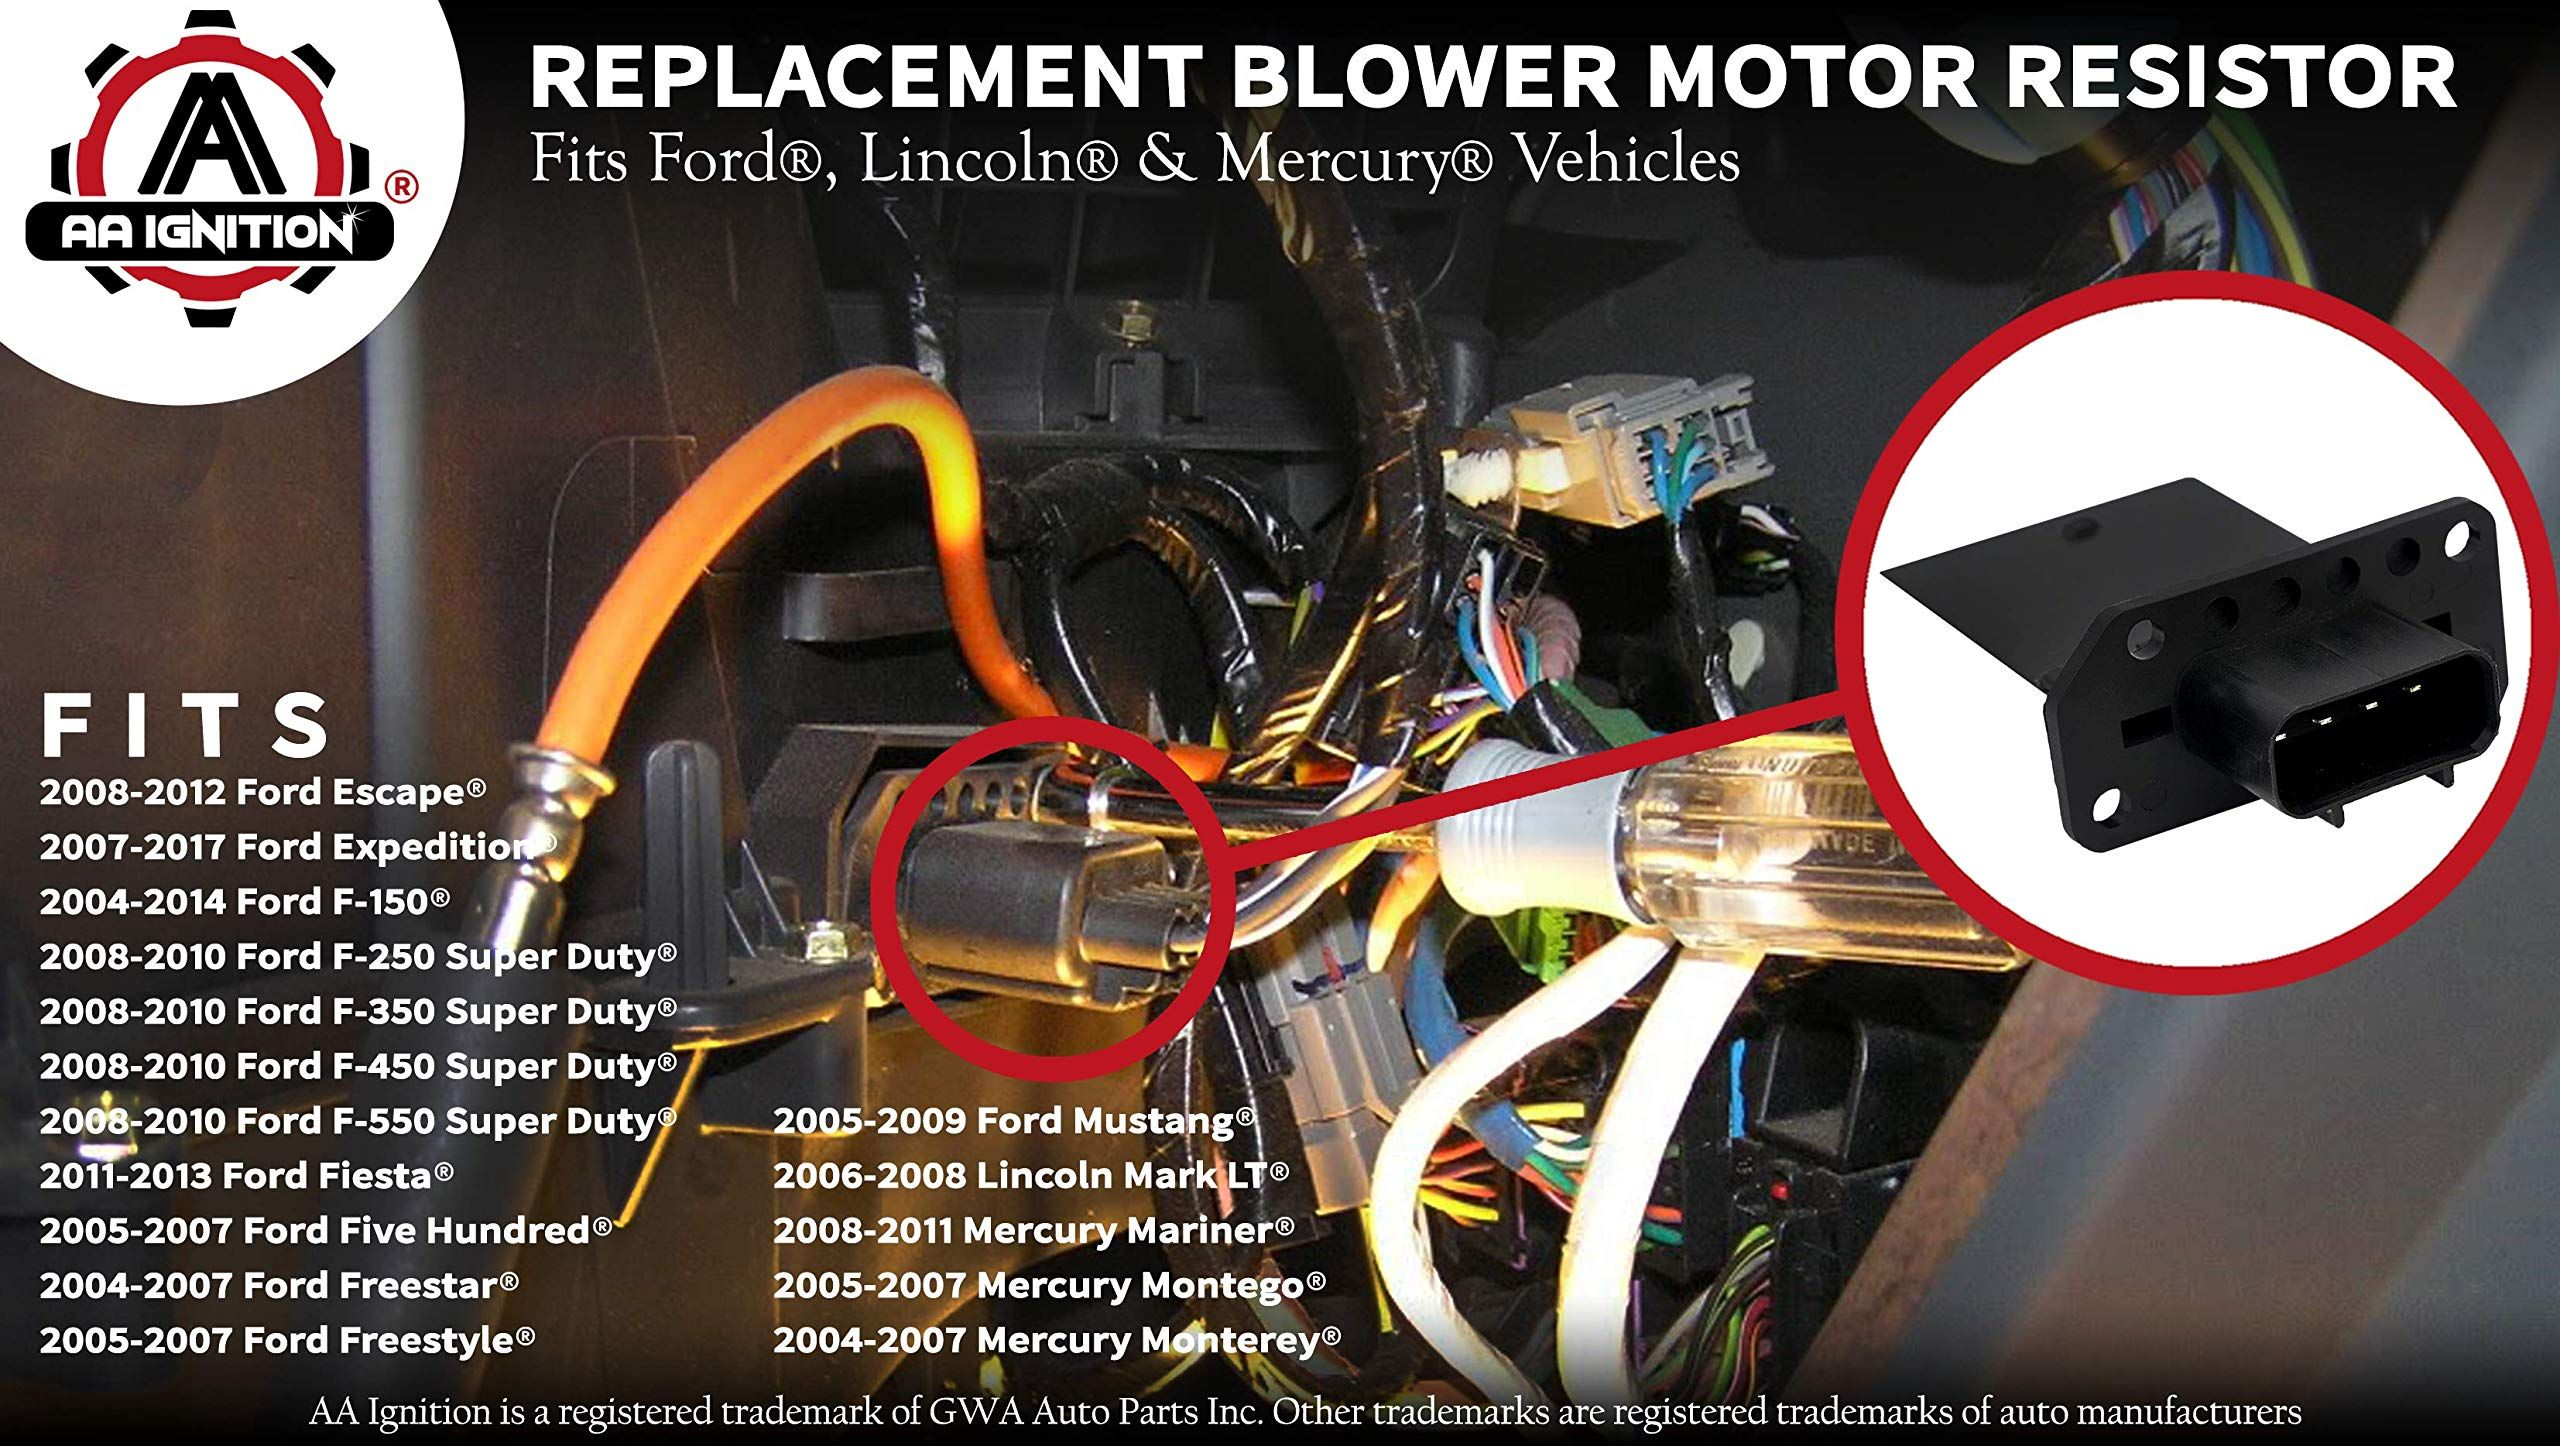 HVAC Blower Motor Resistor Fits Ford Expedition, Escape